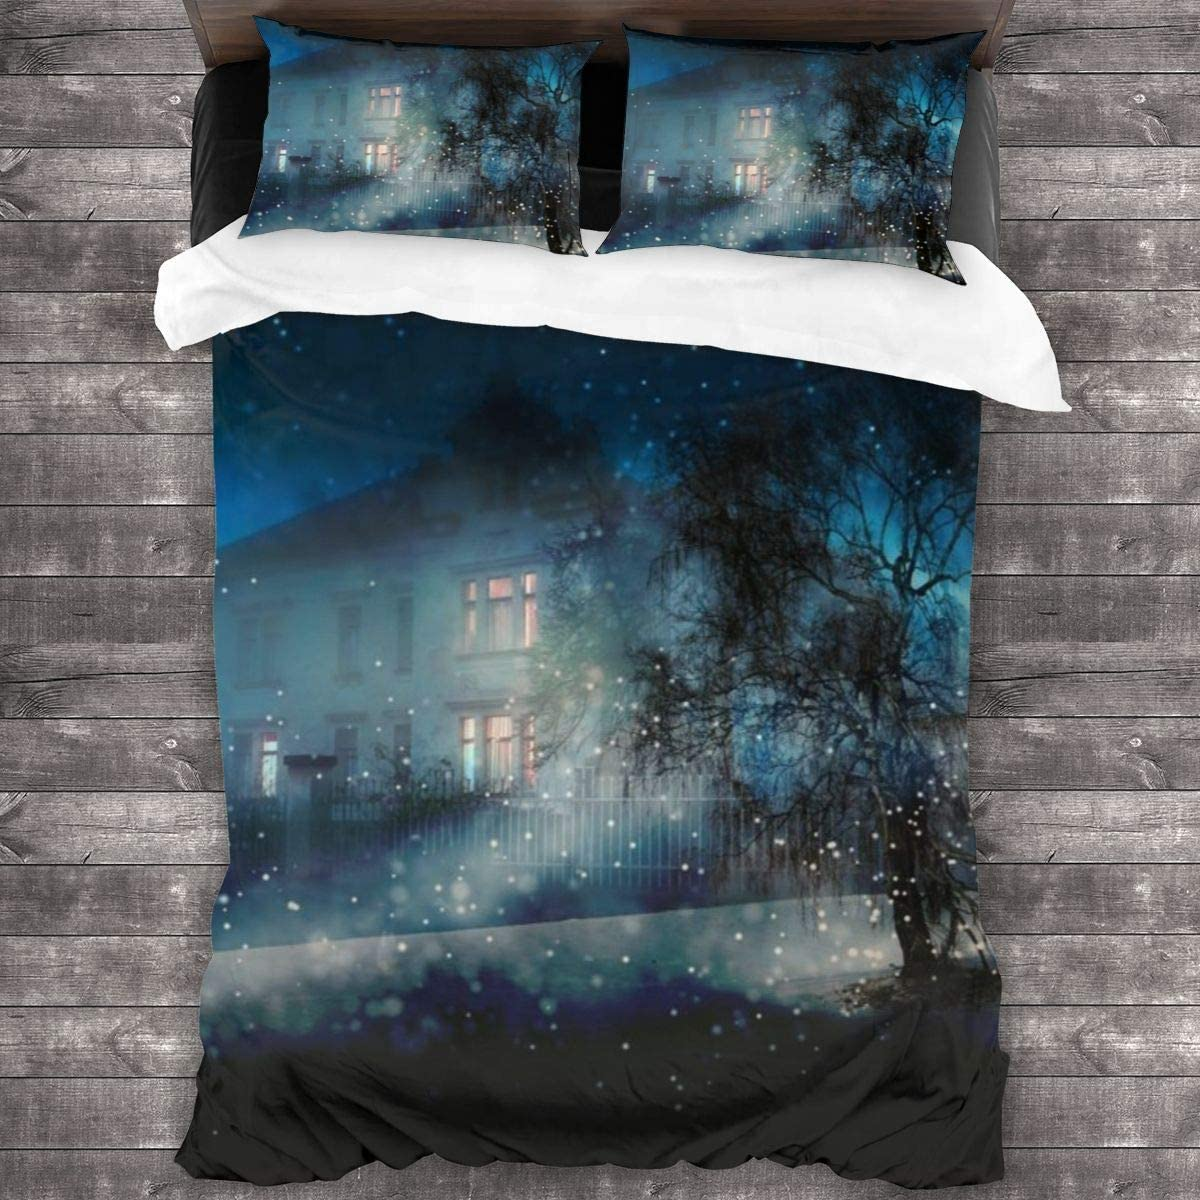 AUISS 3 Piece Bedding Set Moonlight Snow Quilt Cover Bedroom Comforters Microfiber Sheet Two Pillowcase Comfy Bedspread Coverlet Hotel Decorative